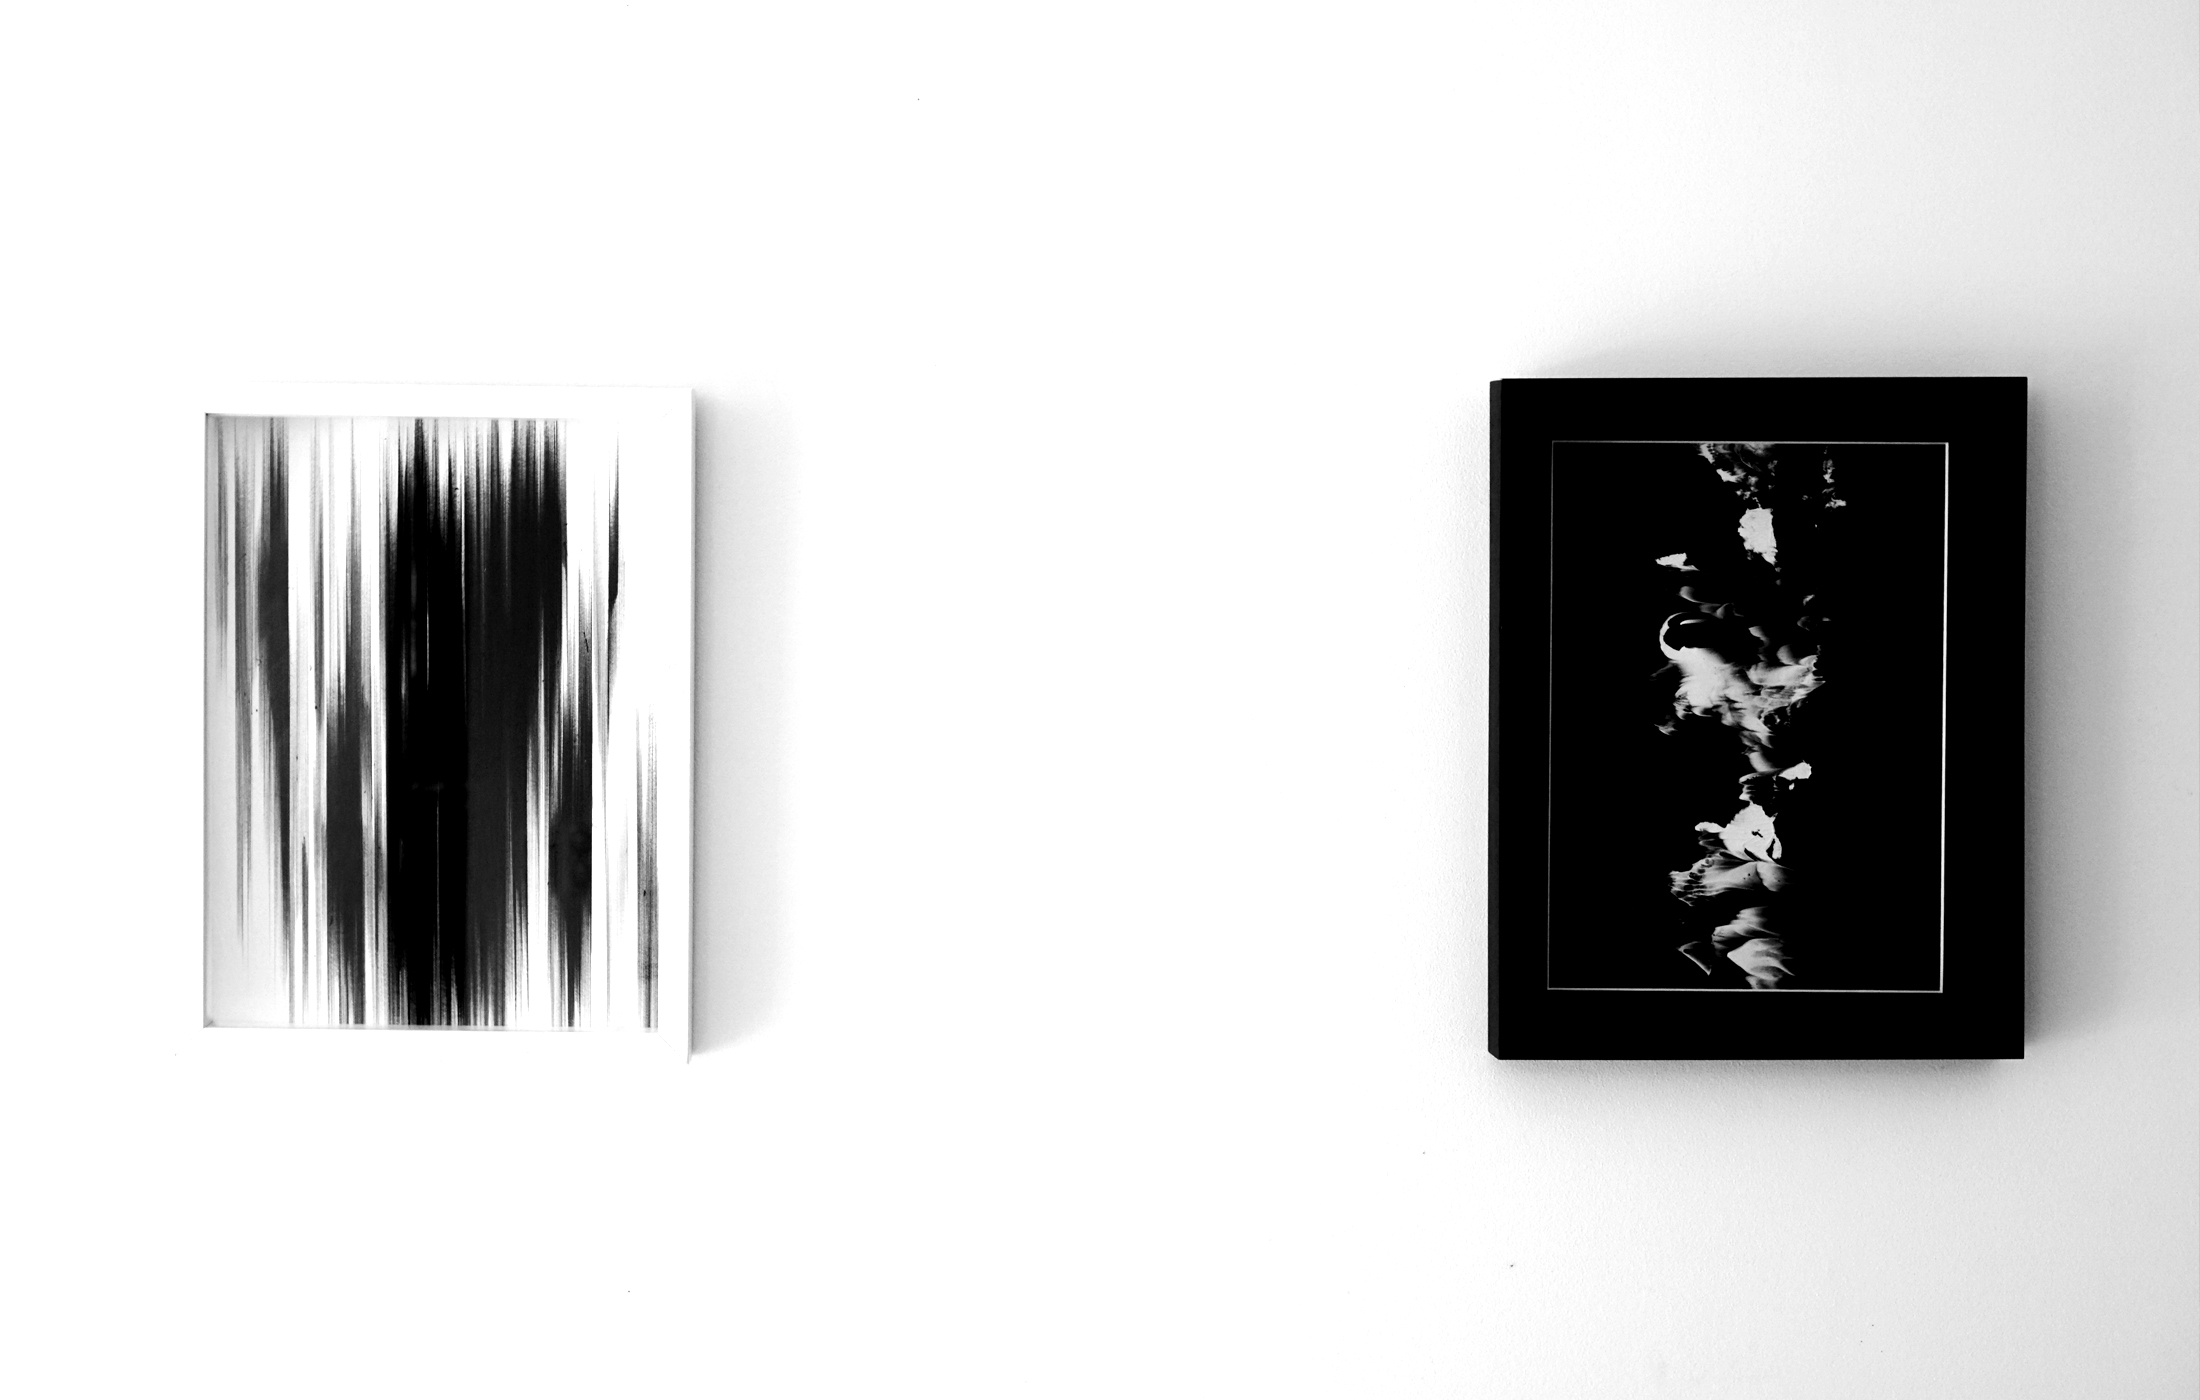 Agathe Toman Unfold #2 Painting Abstract Art Woman Artist French Biarritz Gallery Exhibition Paris Contemporary Modern Black White Shades